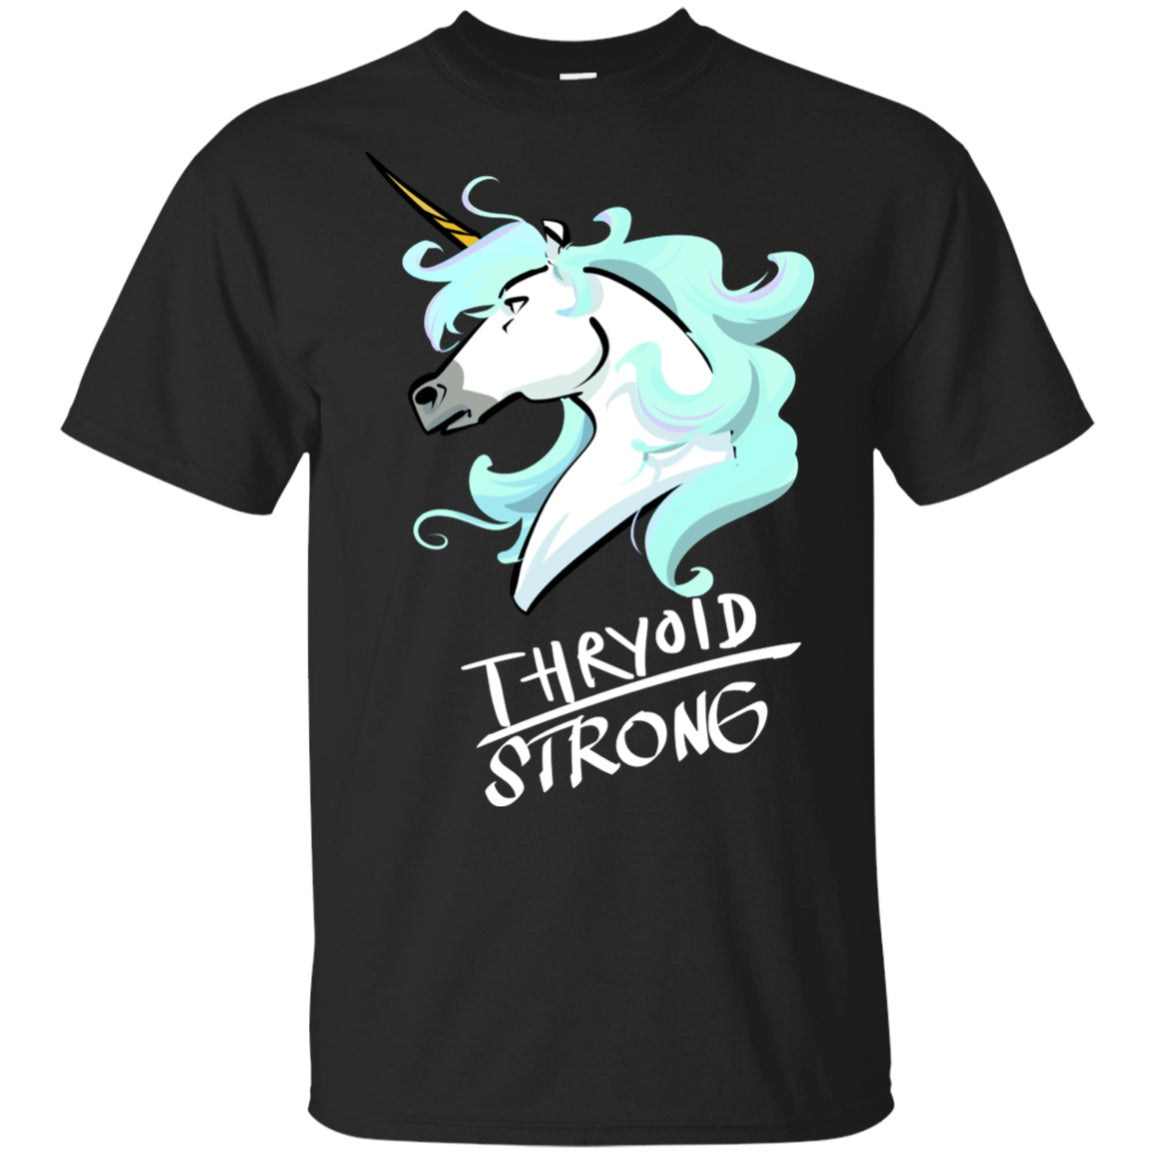 Thyroid Strong Unicorn Cotton Unisex T-Shirt - The Unchargeables